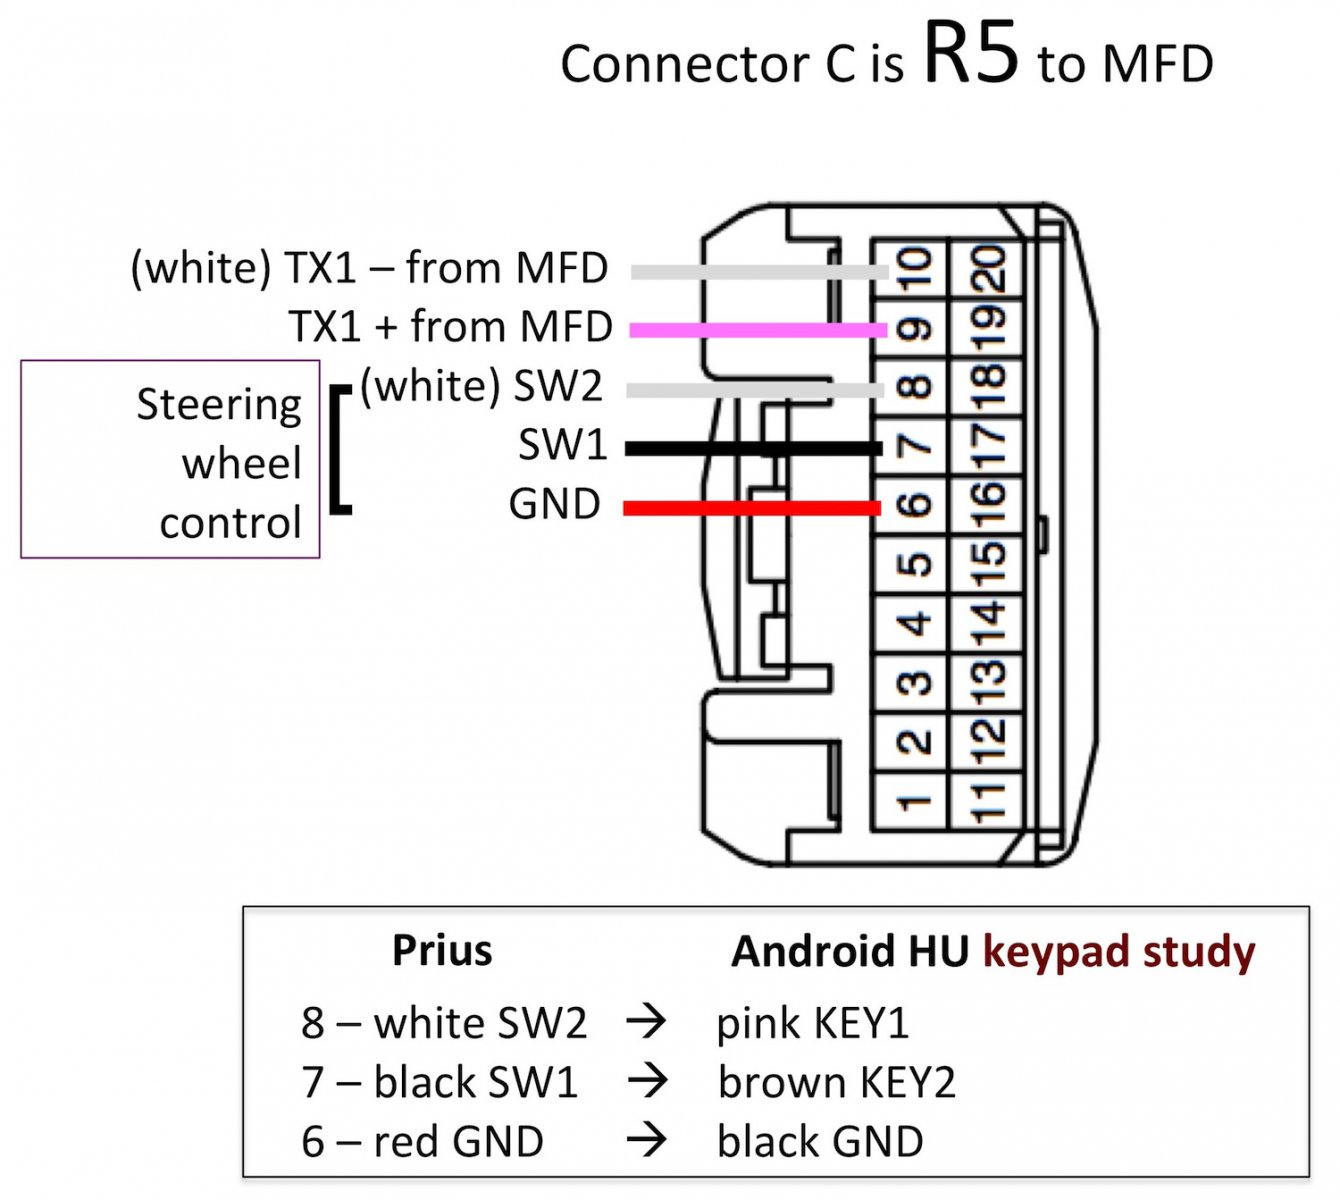 axxess wiring diagram exchange mail flow steering wheel control with android hu & without metra aswc interface | priuschat